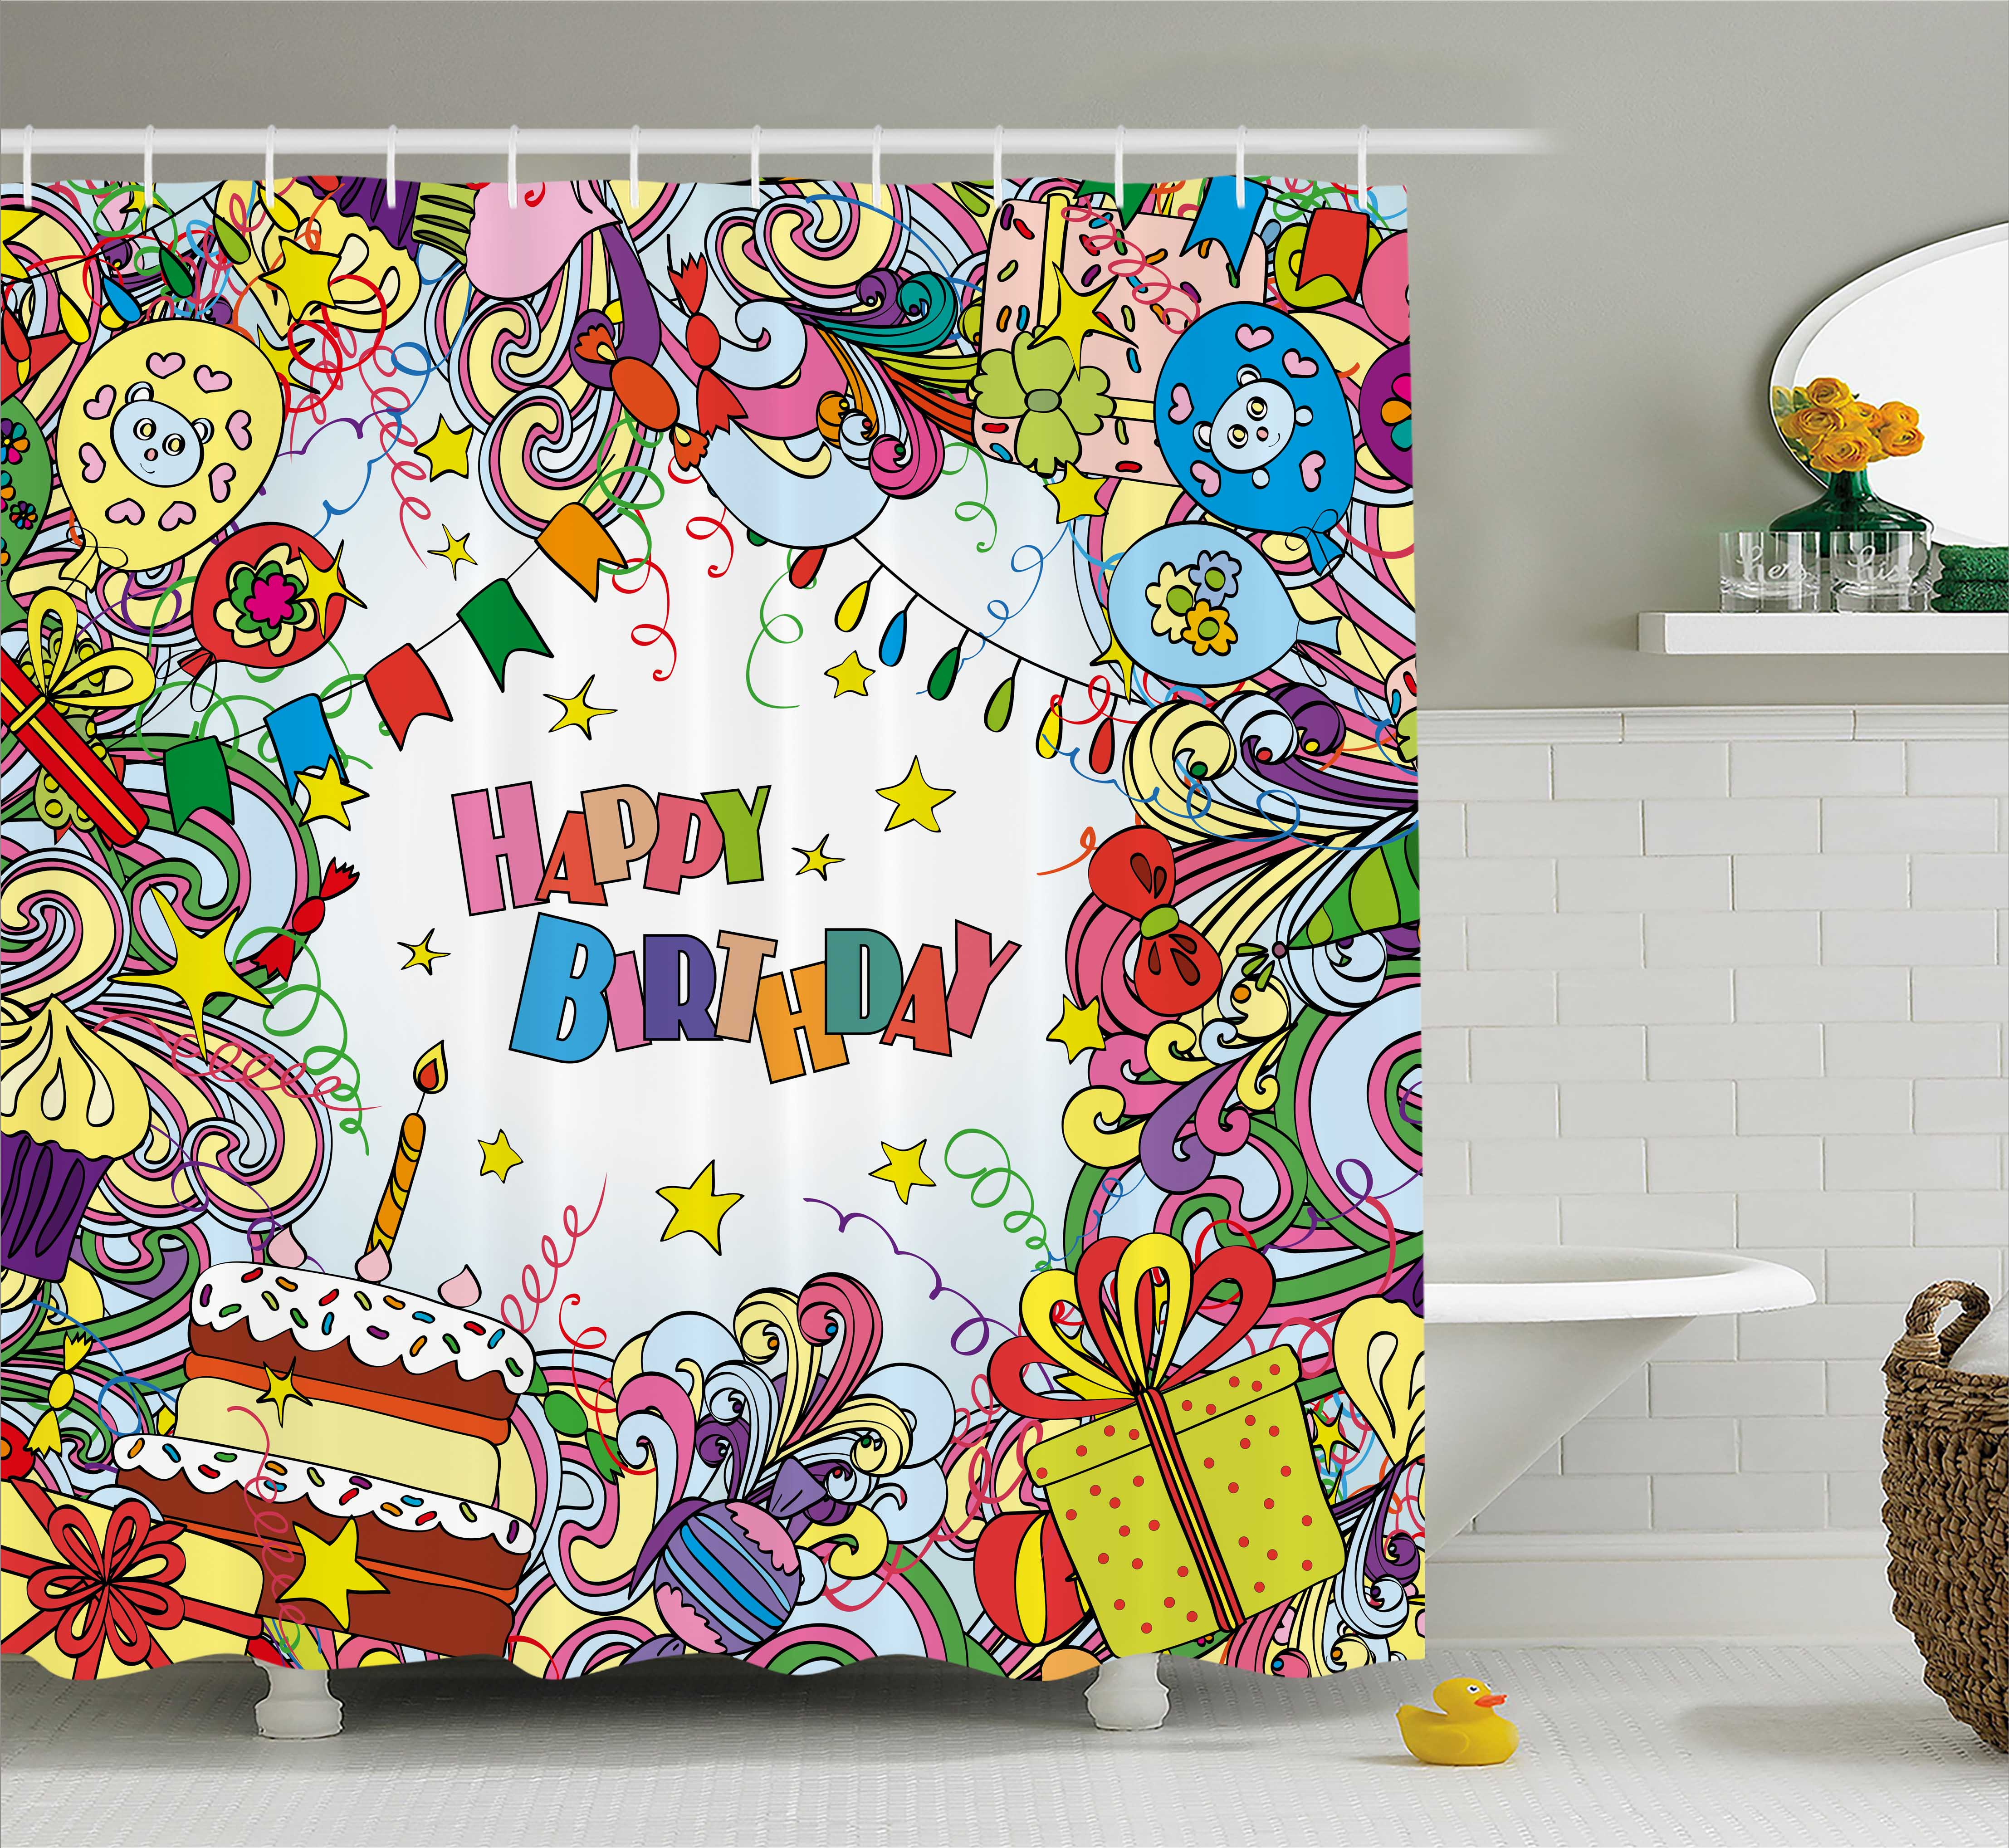 Birthday Decorations Shower Curtain, Greeting Card Inspired Artwork Colorful Cartoon Style Festive Party, Fabric Bathroom Set with Hooks, 69W X 84L Inches Extra Long, Multicolor, by Ambesonne